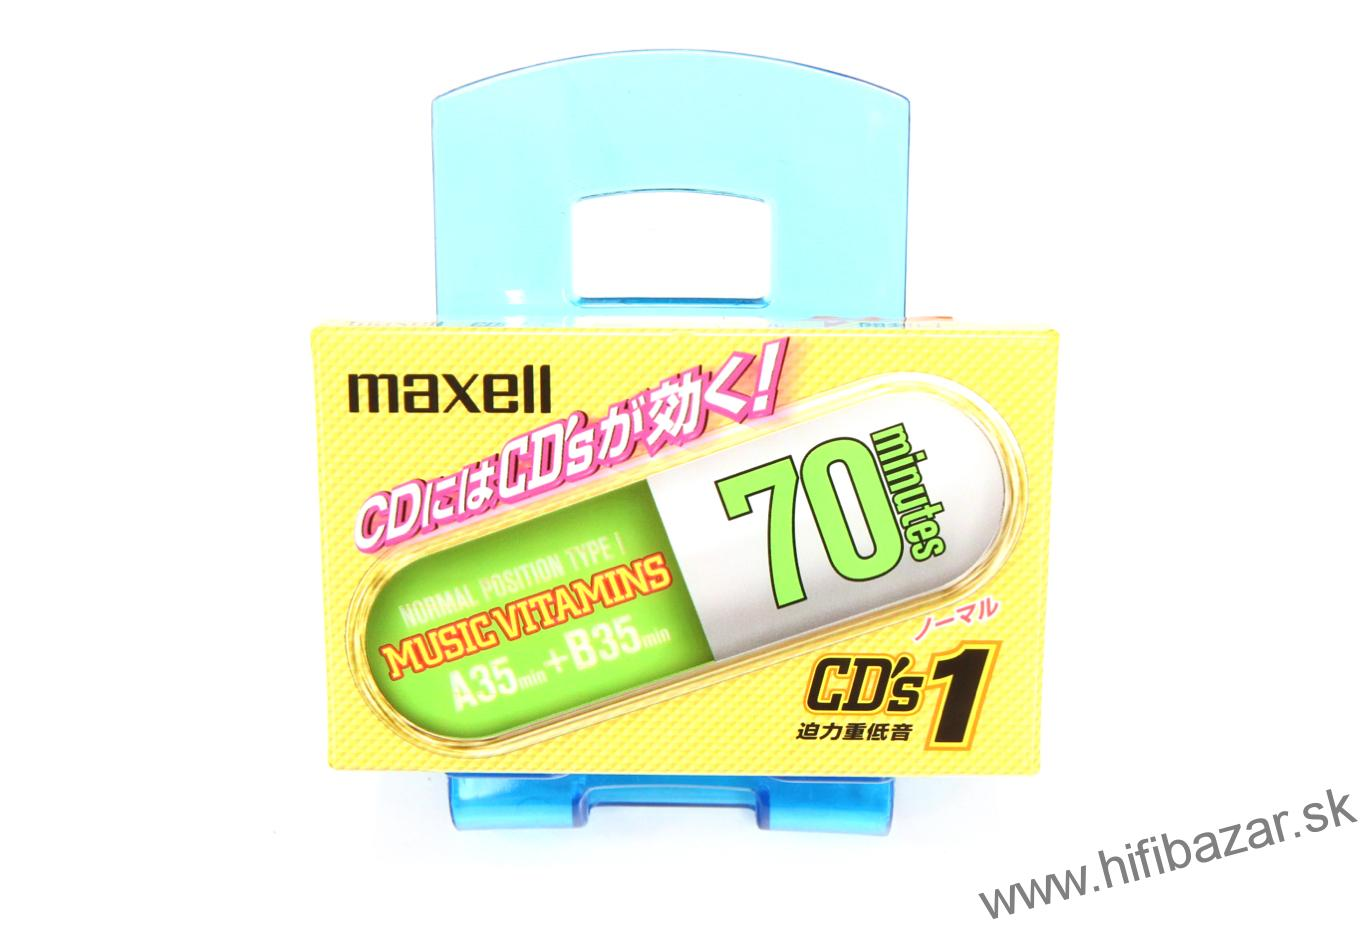 MAXELL CD's1-70 Japan